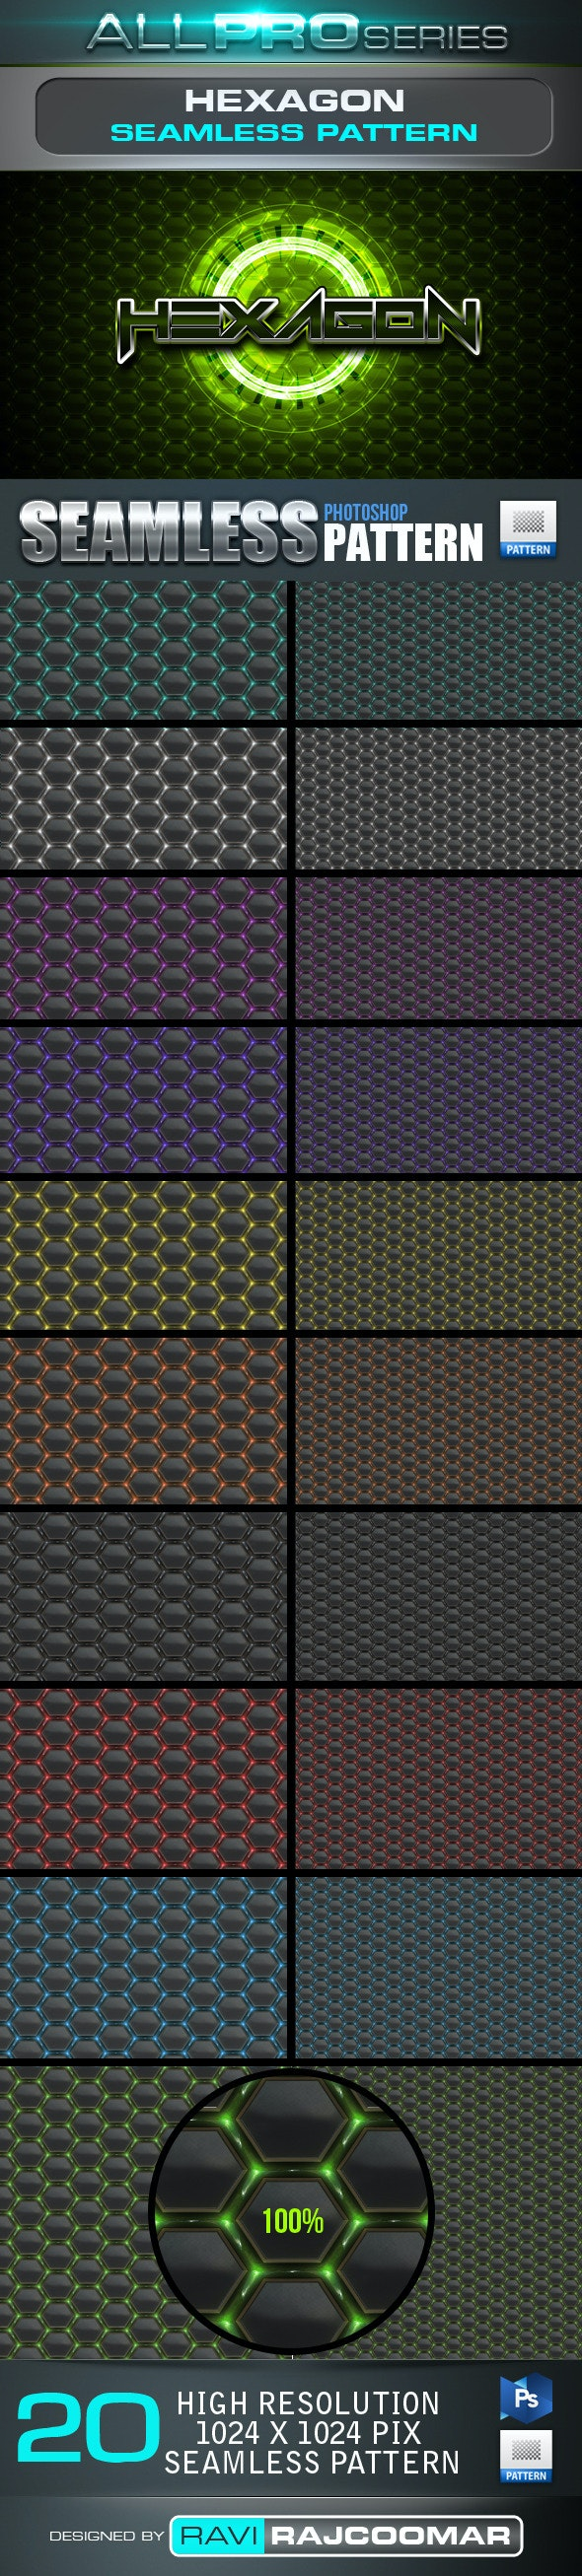 Hexagon Seamless Tileable Patter - Techno / Futuristic Textures / Fills / Patterns